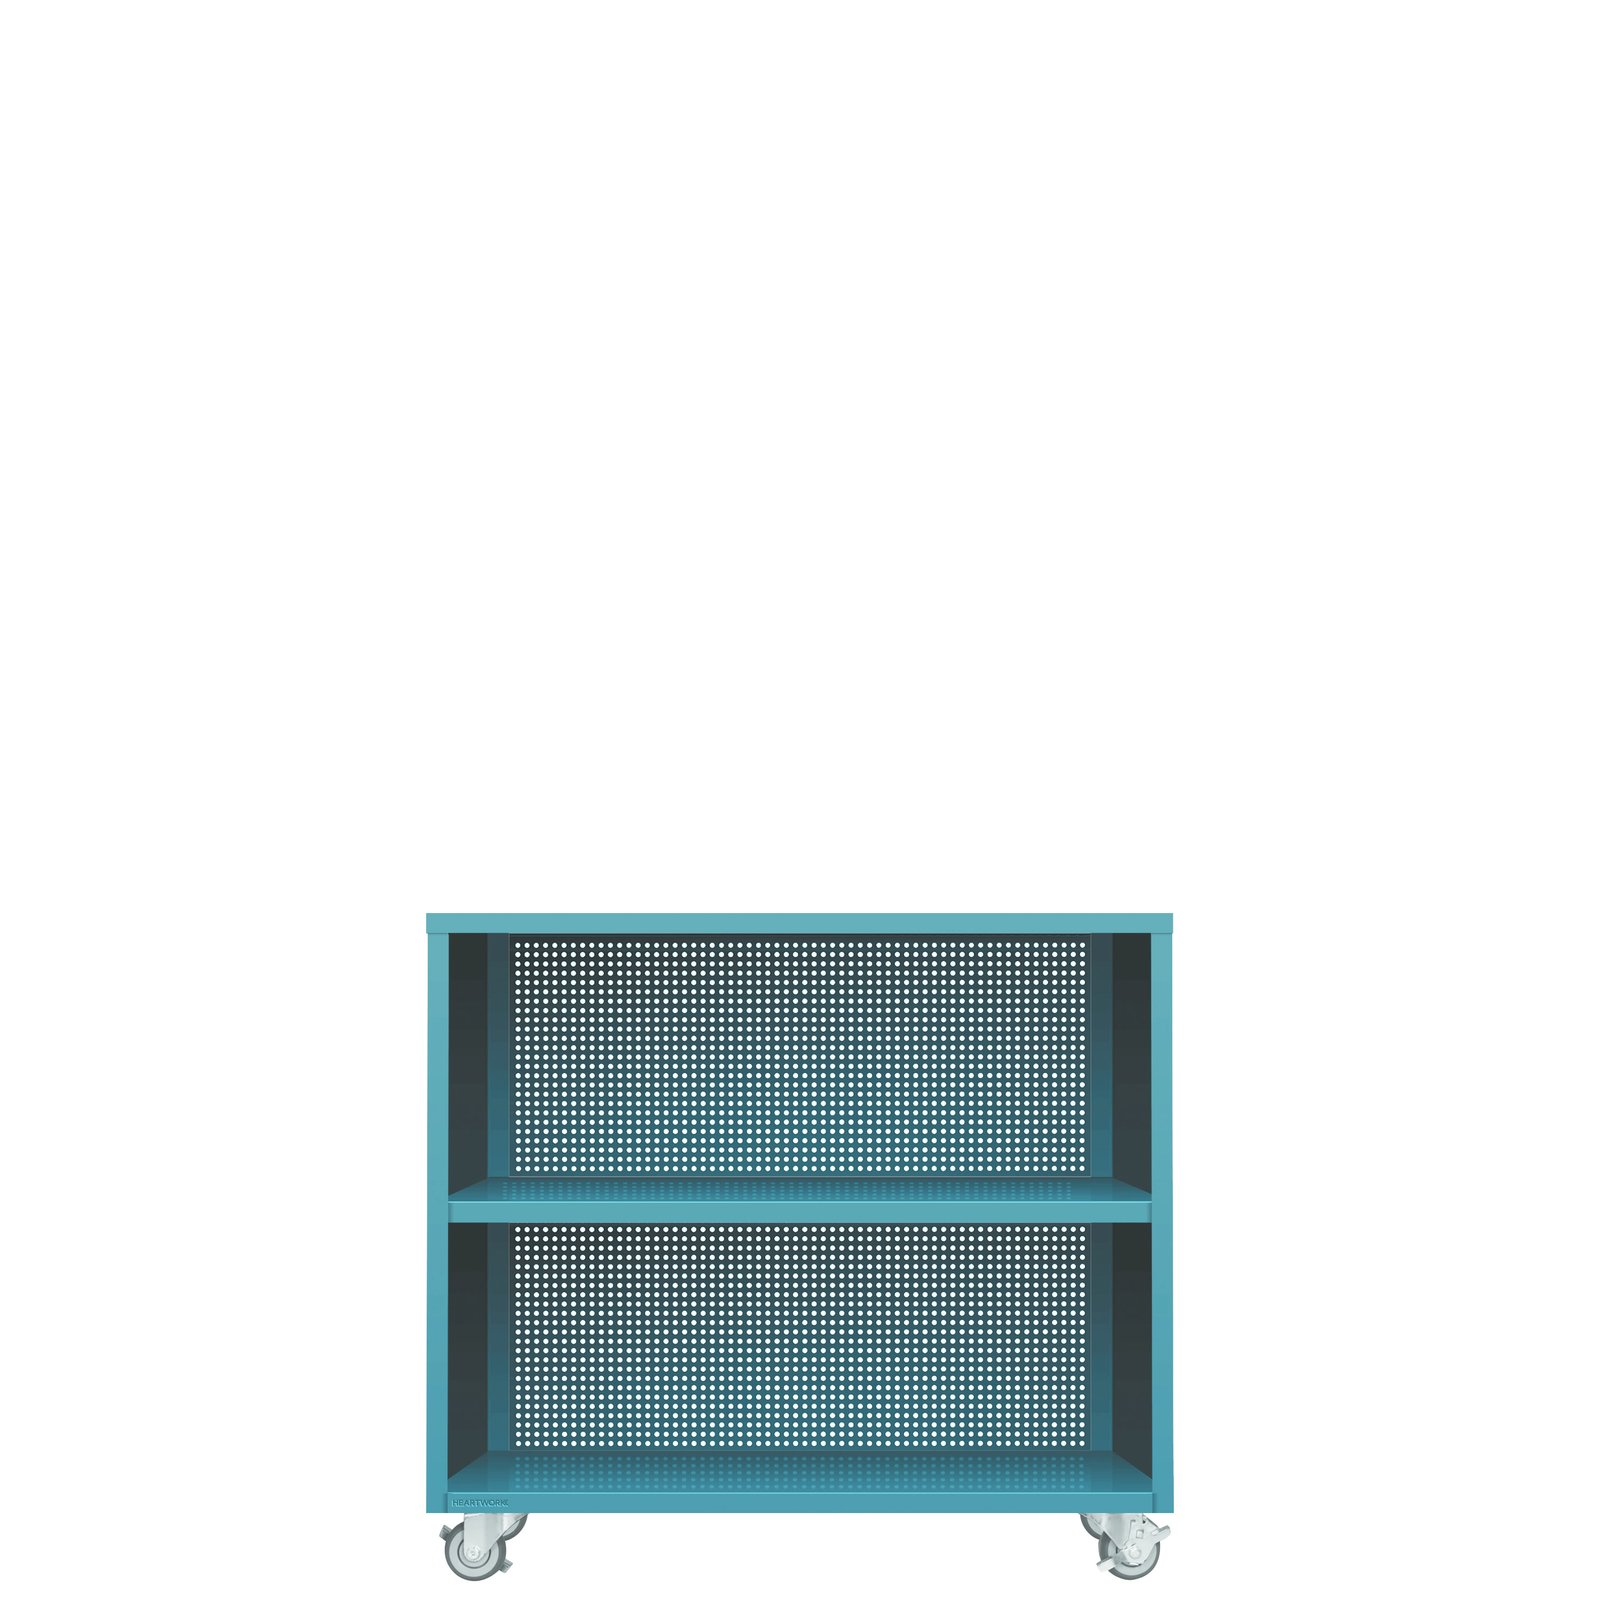 Active duty bookcase (2012) Heartwork Made of heavy-gauge steel and  available in a wide variety of riotous  powder-coated hues by color expert Laura Guido-Clark, each of  Heartwork's storage designs is appropriate for both residential and commercial use. Like most of  the company's products, the Active Duty collection is welded at the company's Kansas factory